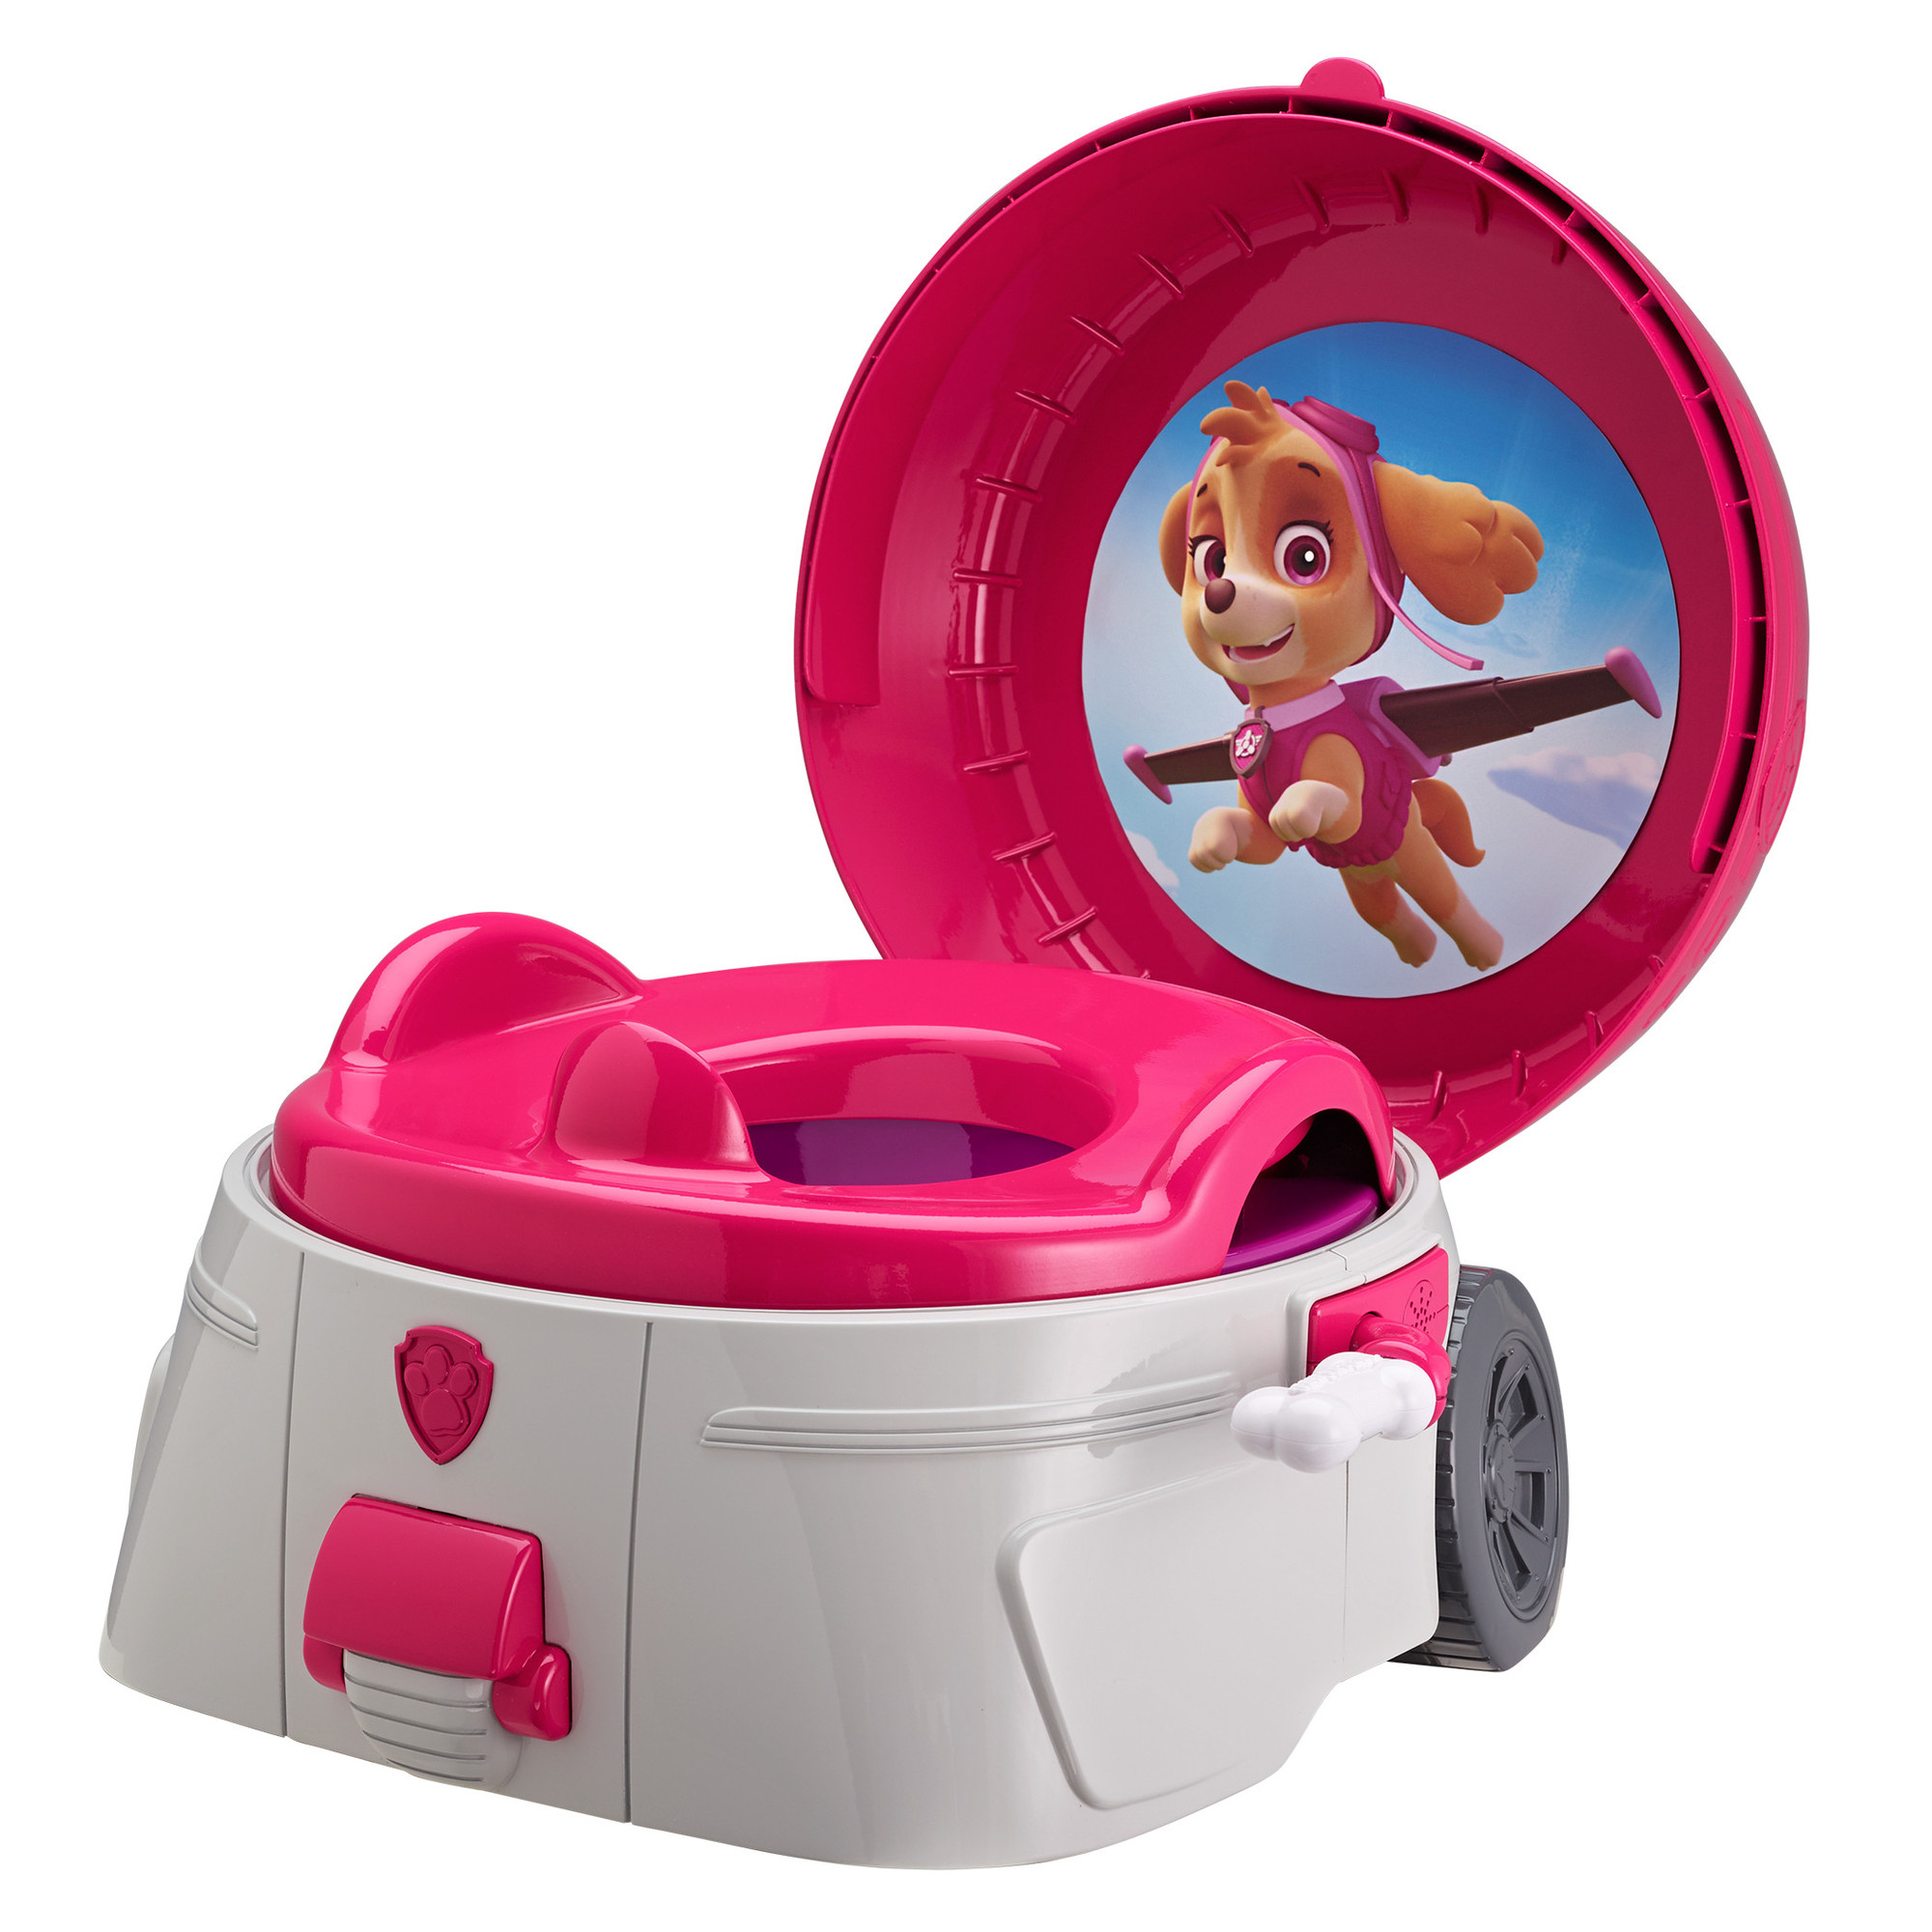 The First Years Nickelodeon 3-in-1 Paw Patrol Potty System, Skye